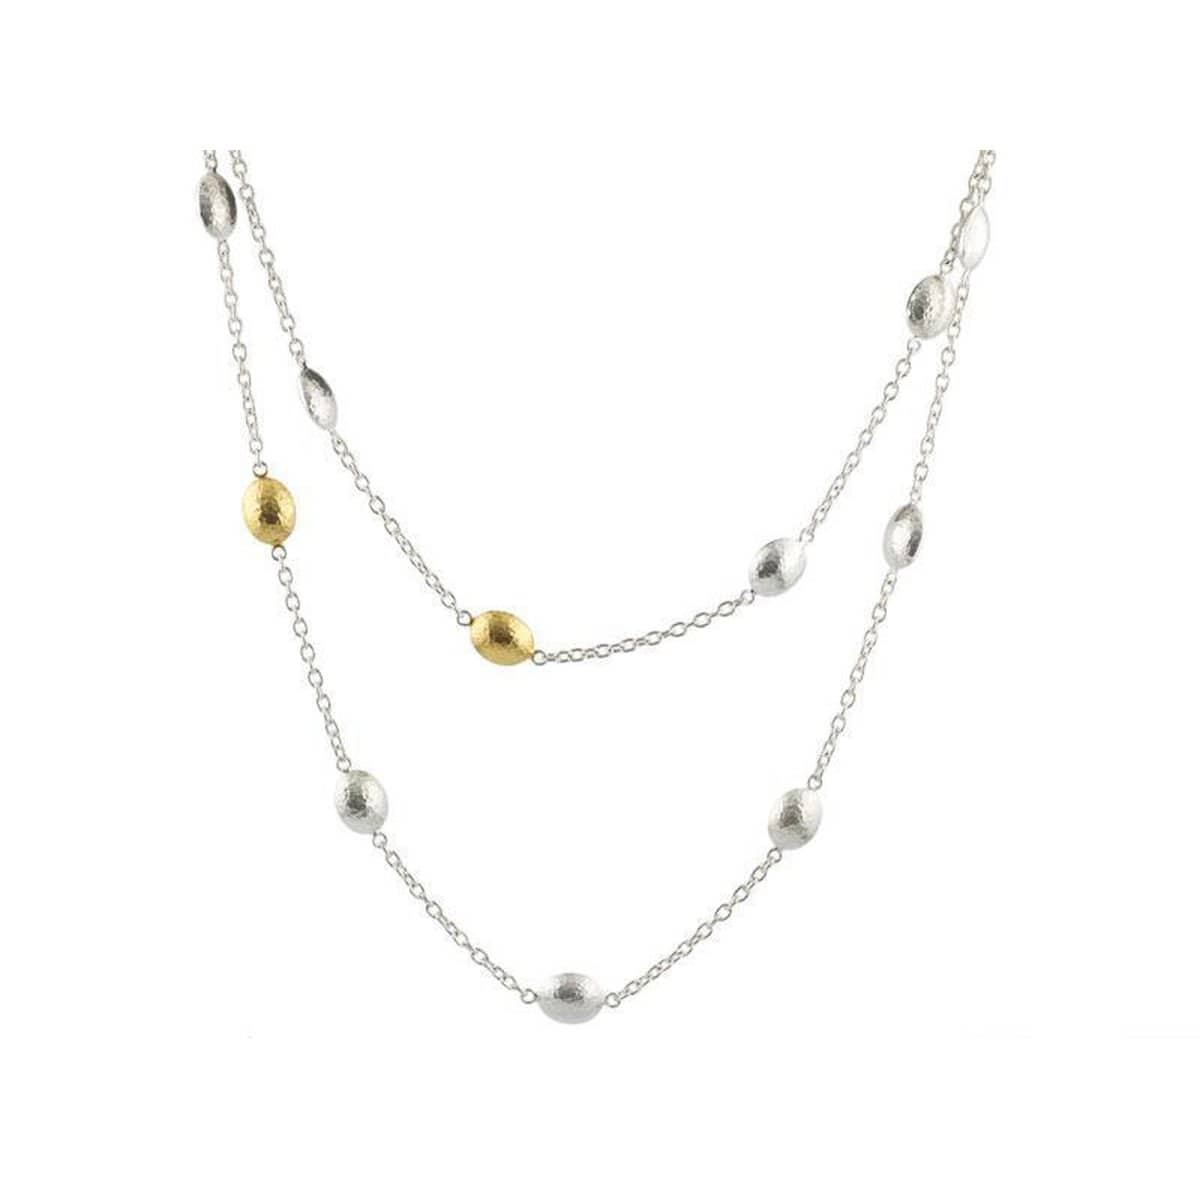 Jordan Sterling Silver Necklace - CHN-1310LST-MXM6-125